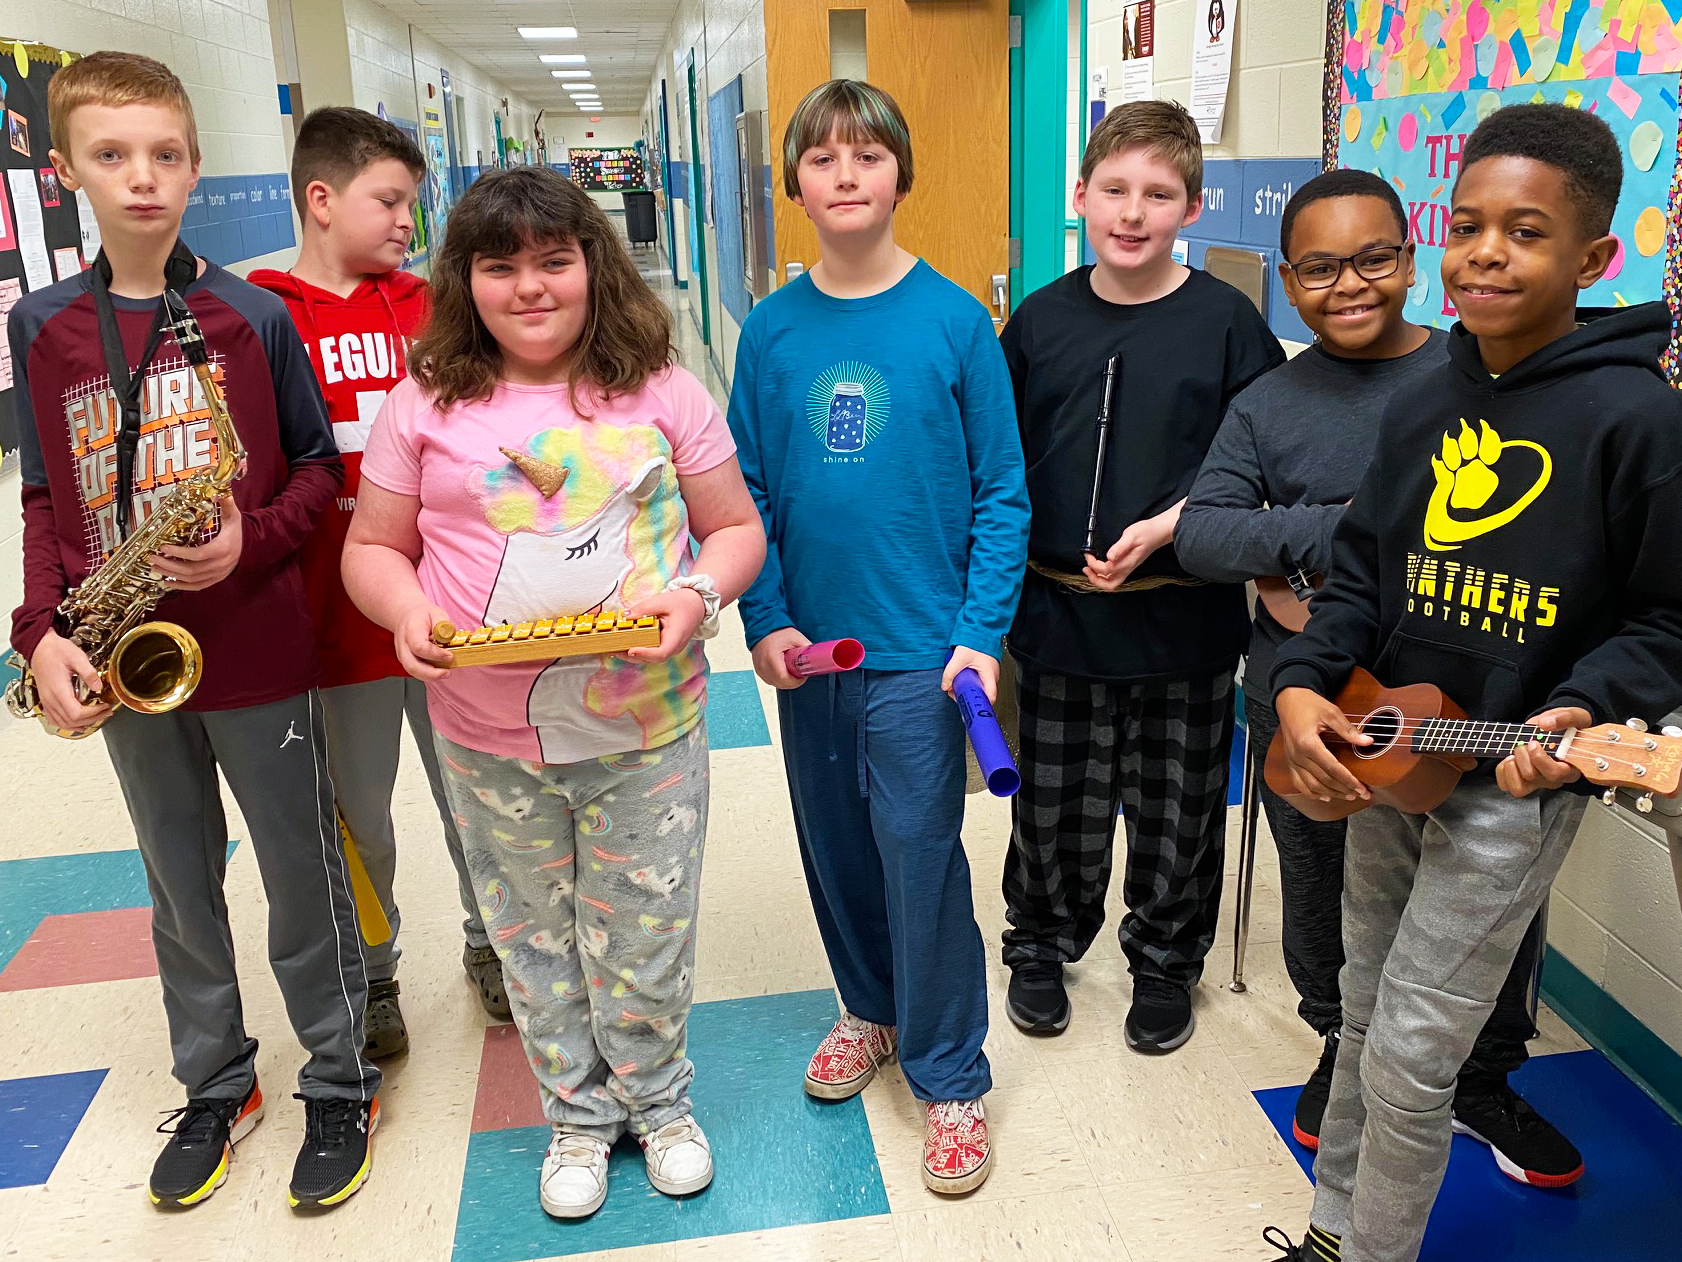 Seven students pose with musical instruments in the hallway.